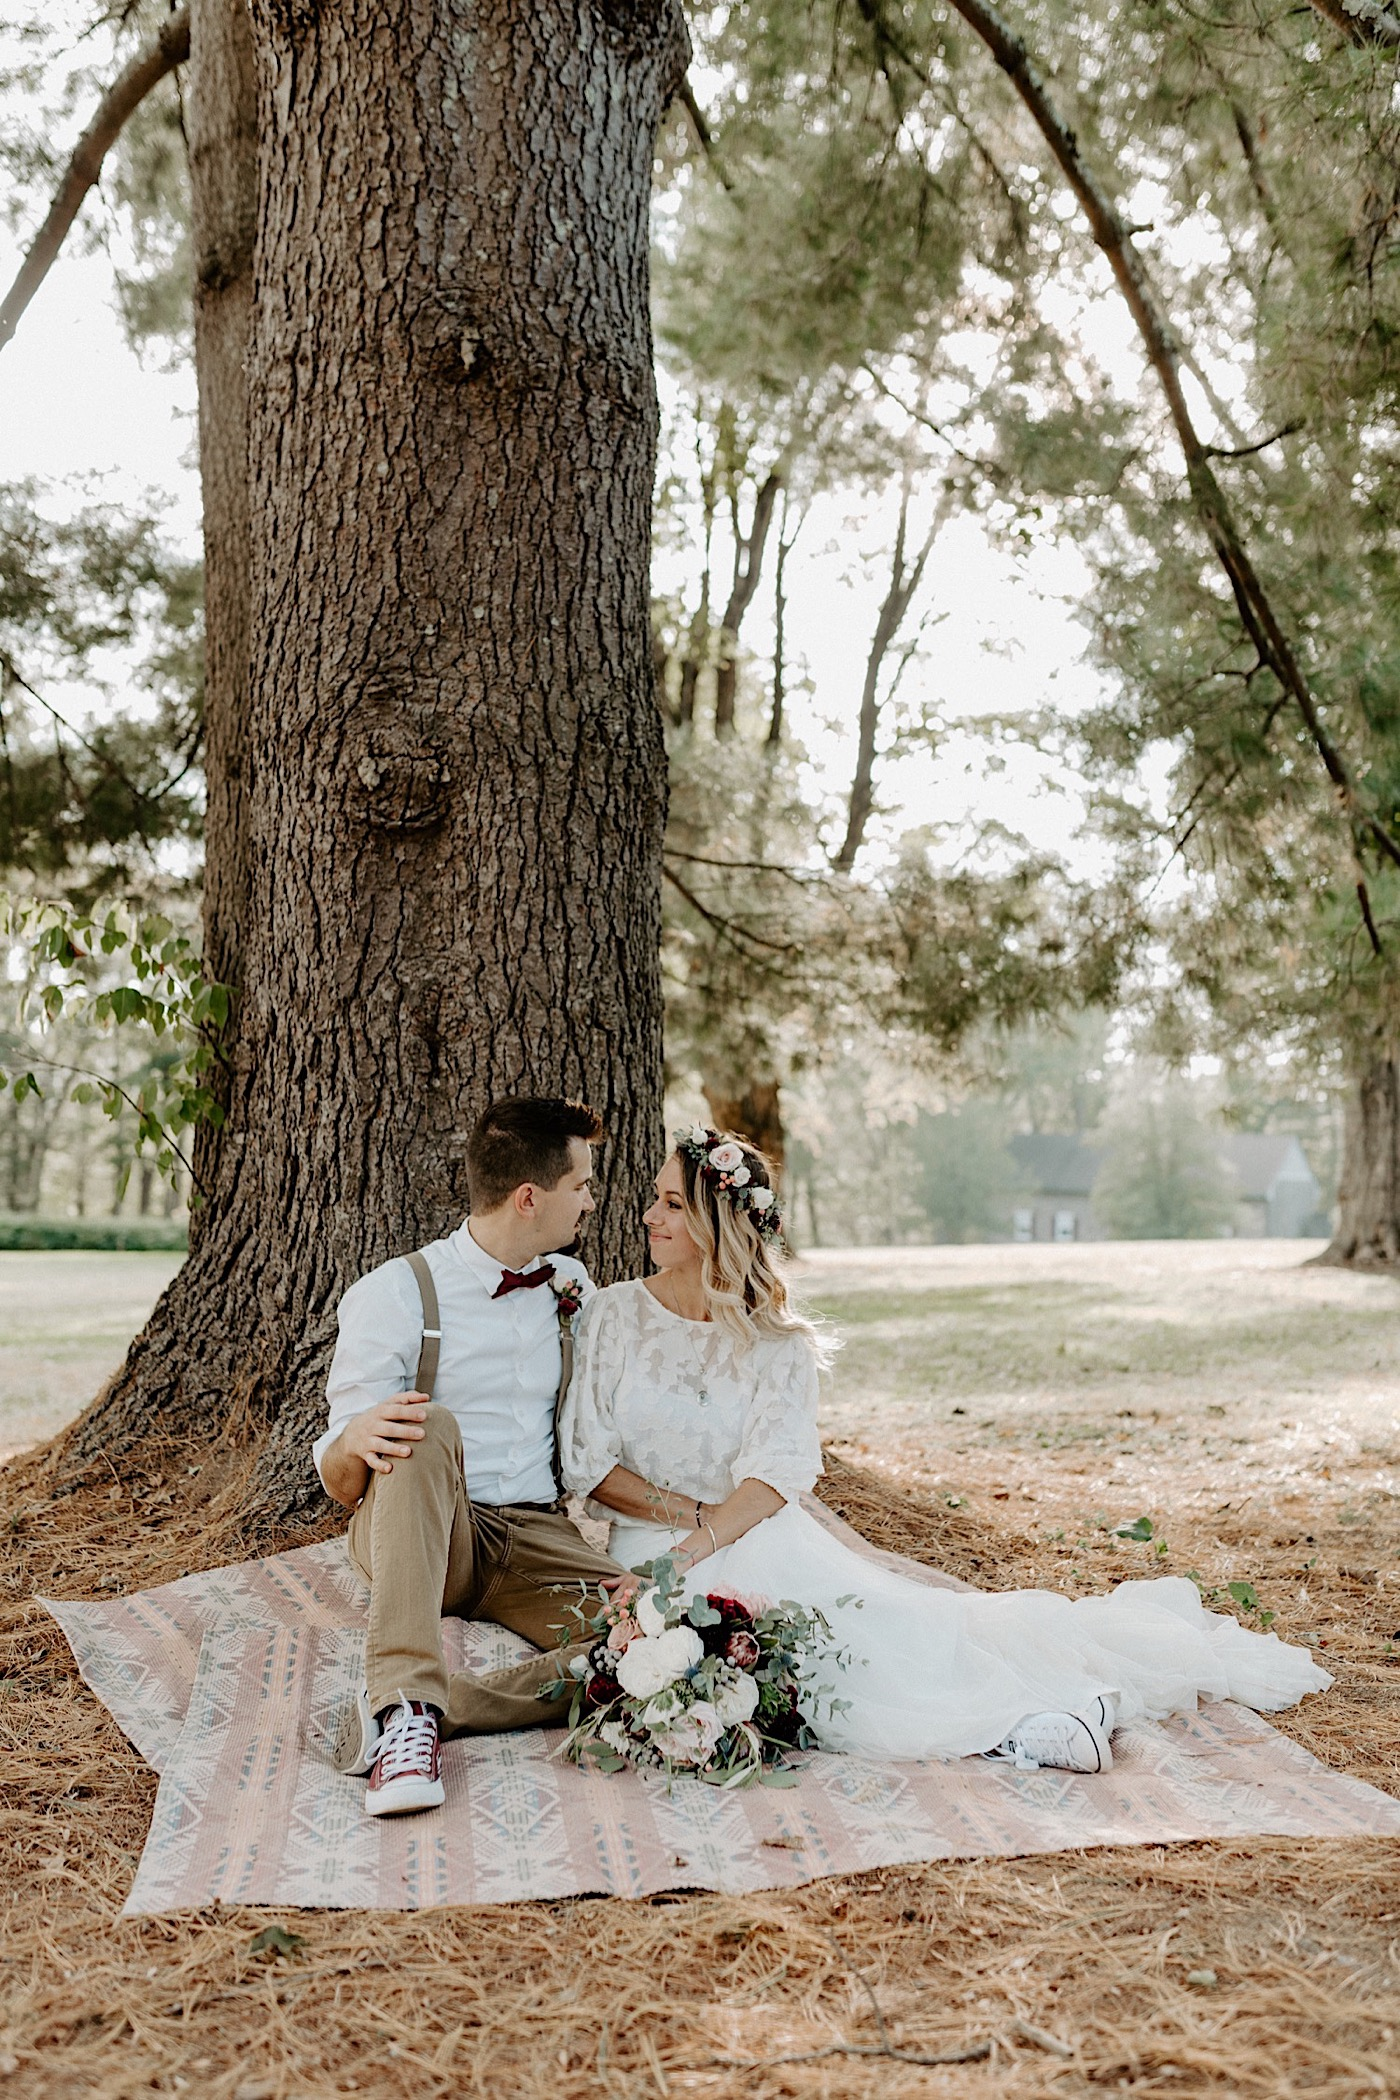 Woolverton Inn Elopement NJ Wedding Photographer Boho Wedding 020